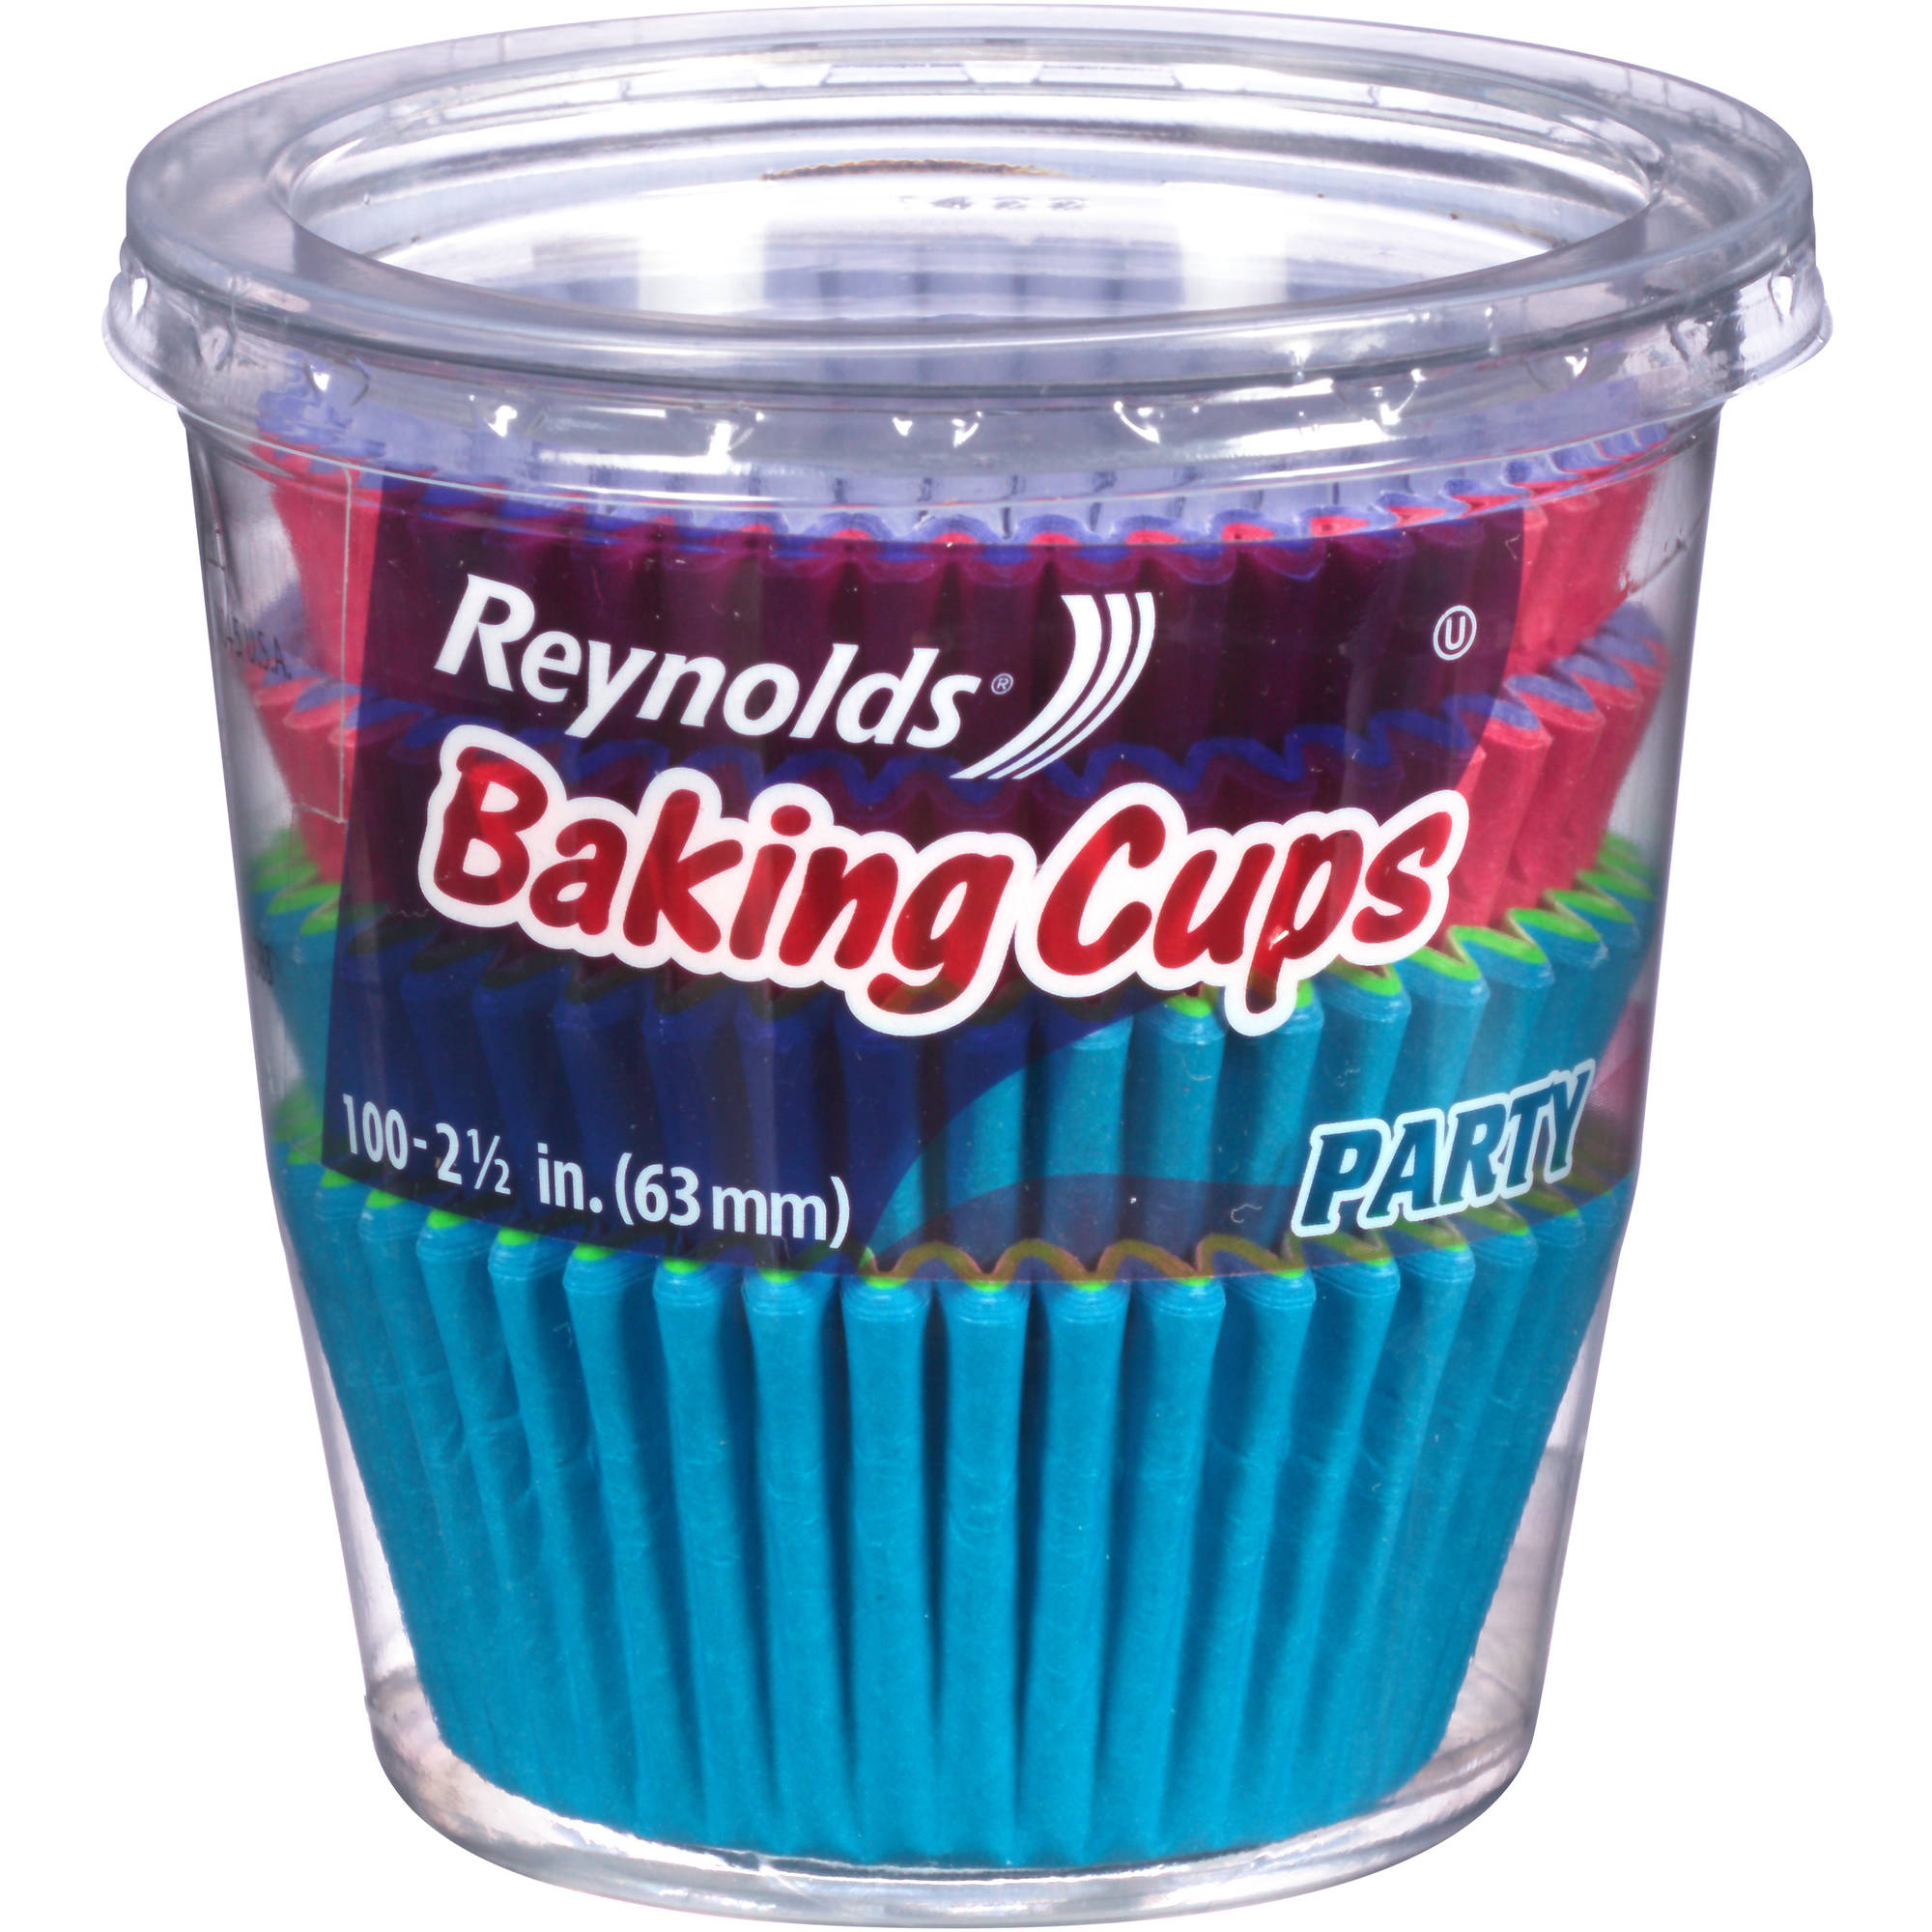 Reynolds® 2-1/2 in. Party Baking Cups 100 ct Container